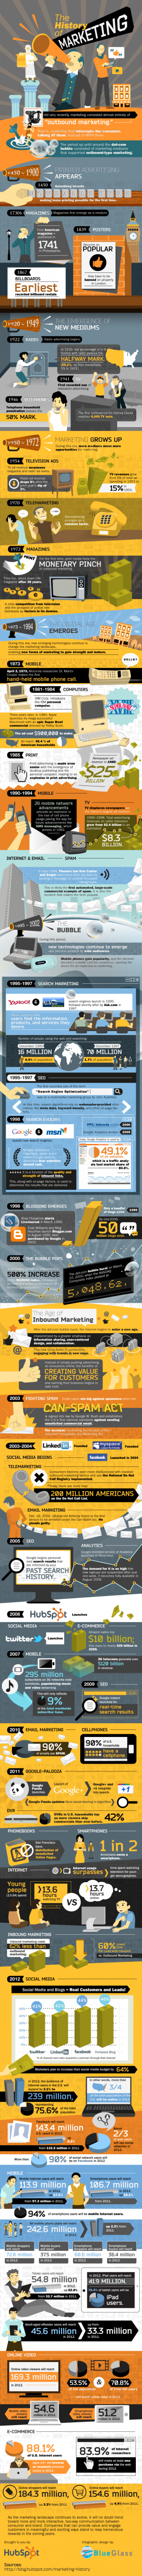 The History of Marketing - An Exhaustive Timeline